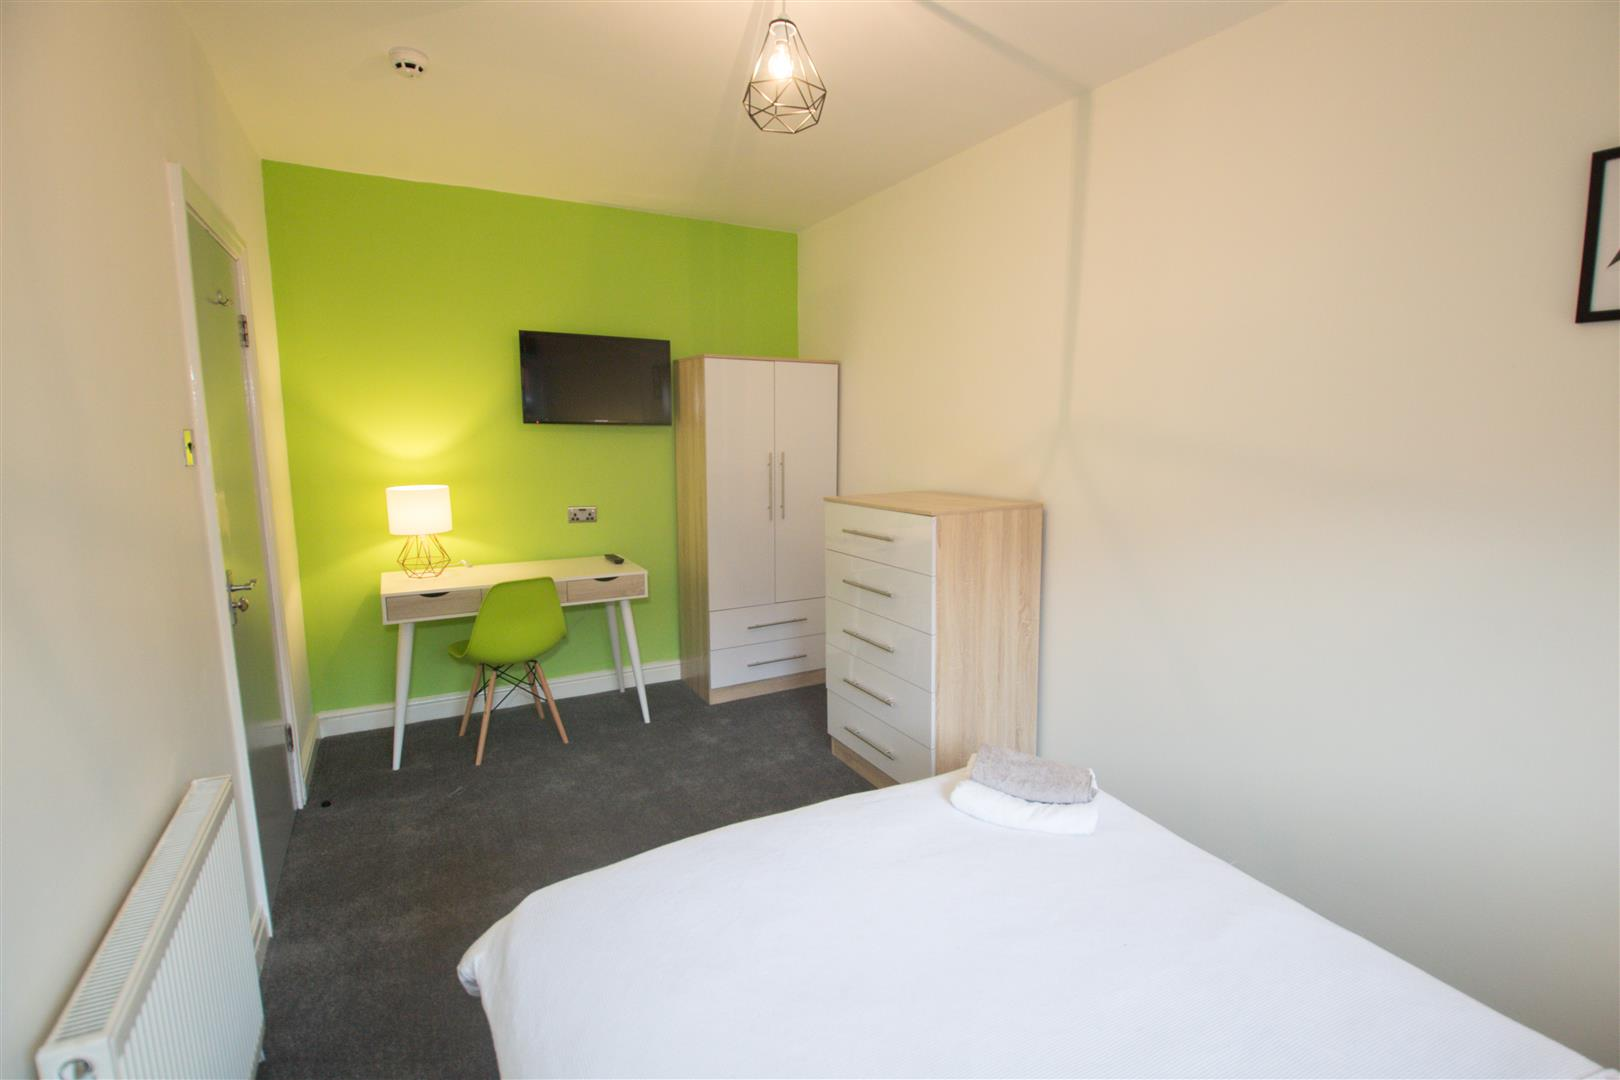 Room 2, Headingley Avenue, Leeds, LS6 3ER Image